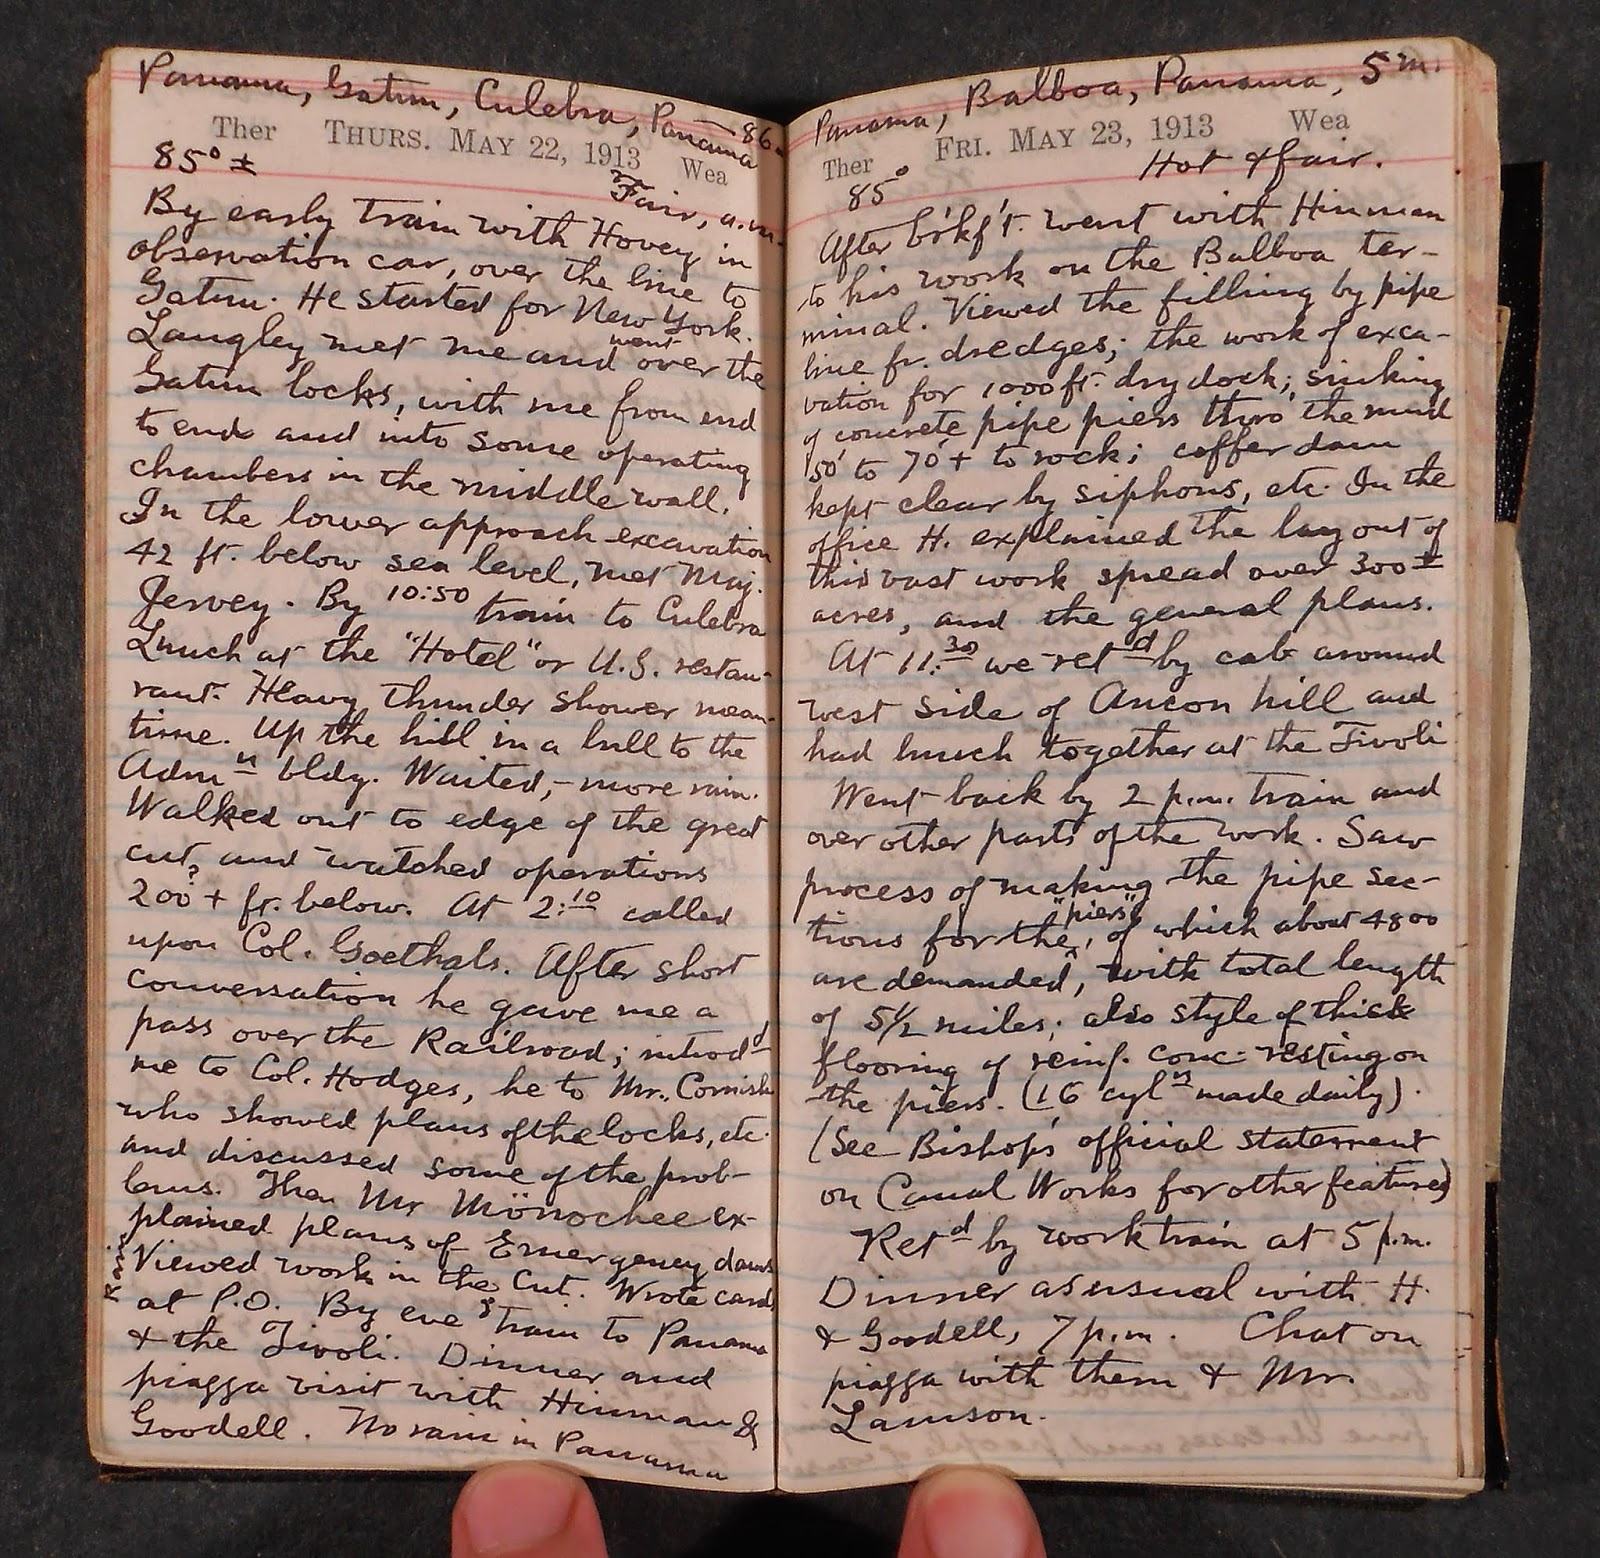 A small book of handwritten text.